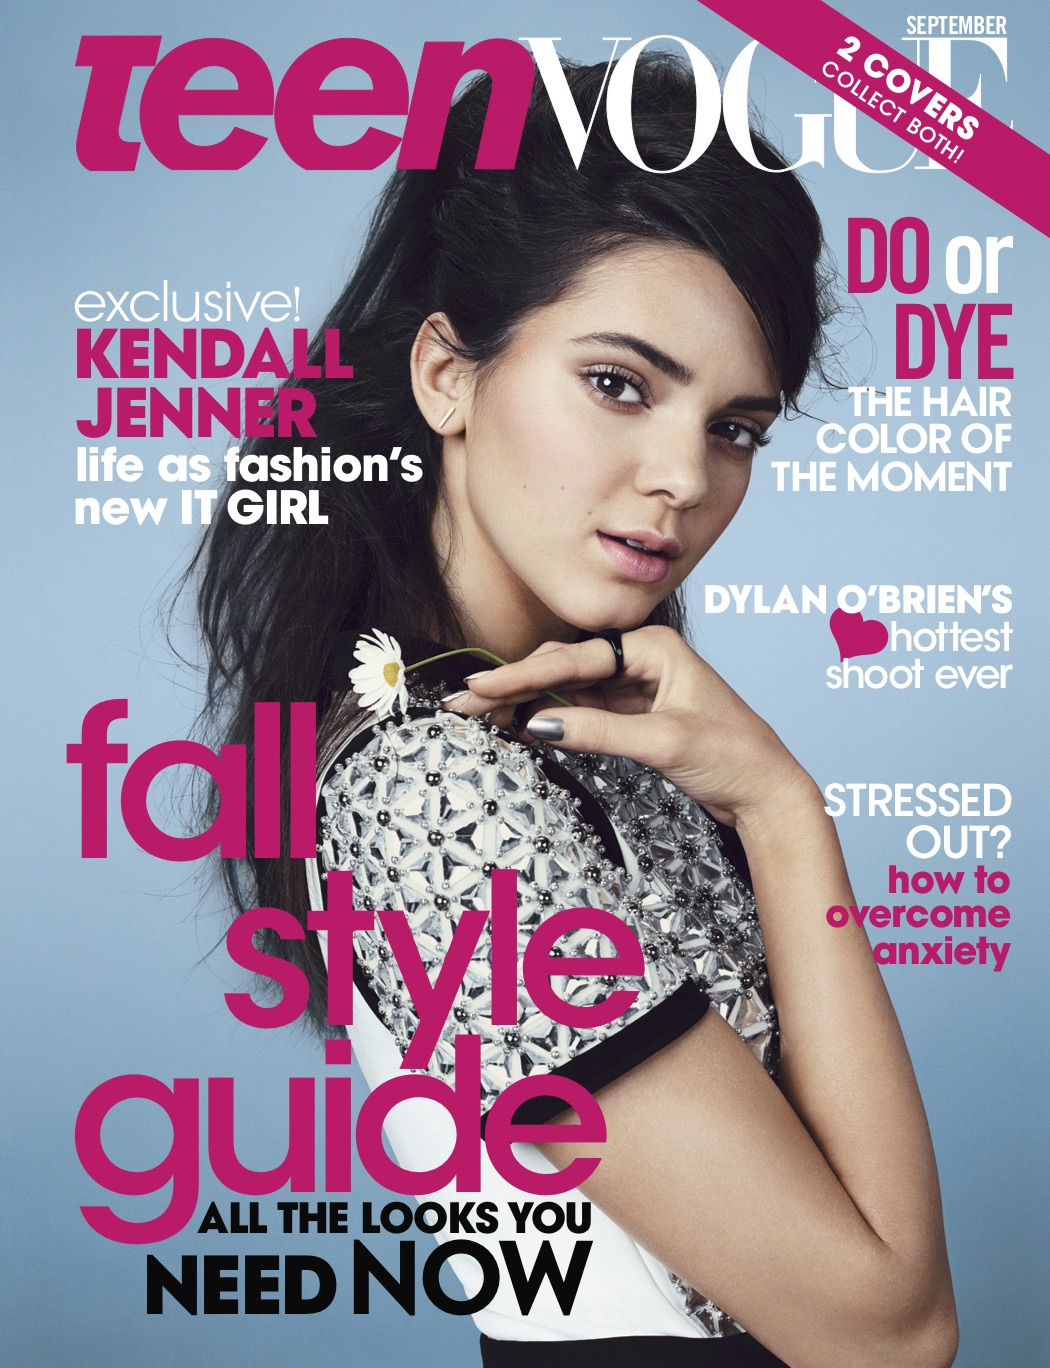 Emma Summerton-Teen Vogue Covers Sept 2014, Kendall Jenner, Sty- Elin Svahn, Make-Up Marla Belt, Nails- Alicia Torello.jpg